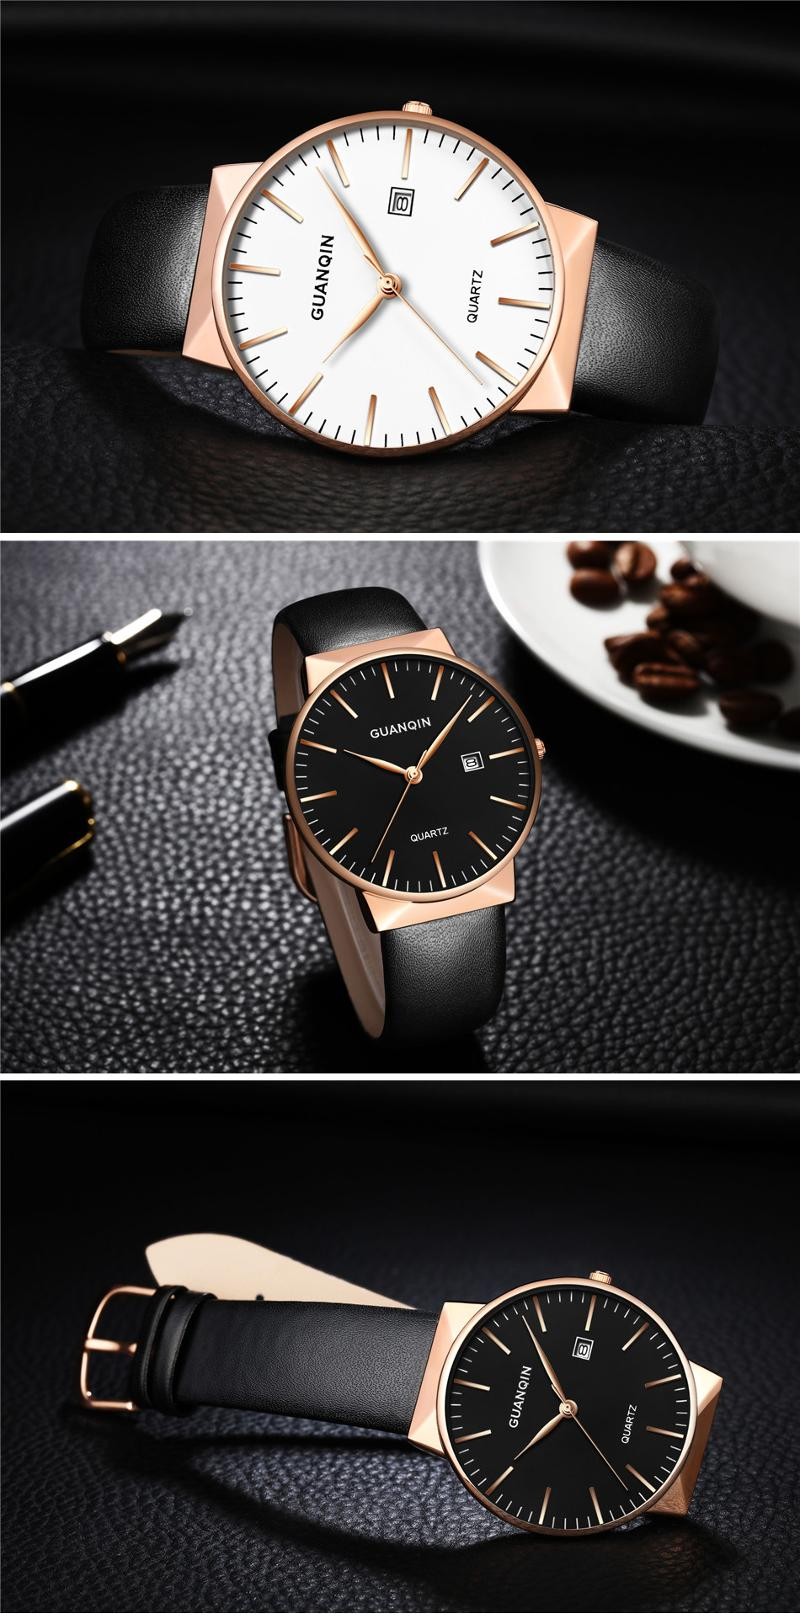 GUANQIN GS19058 Luxury Men Quartz Watch Fashion Leather Strap Wrist Watch